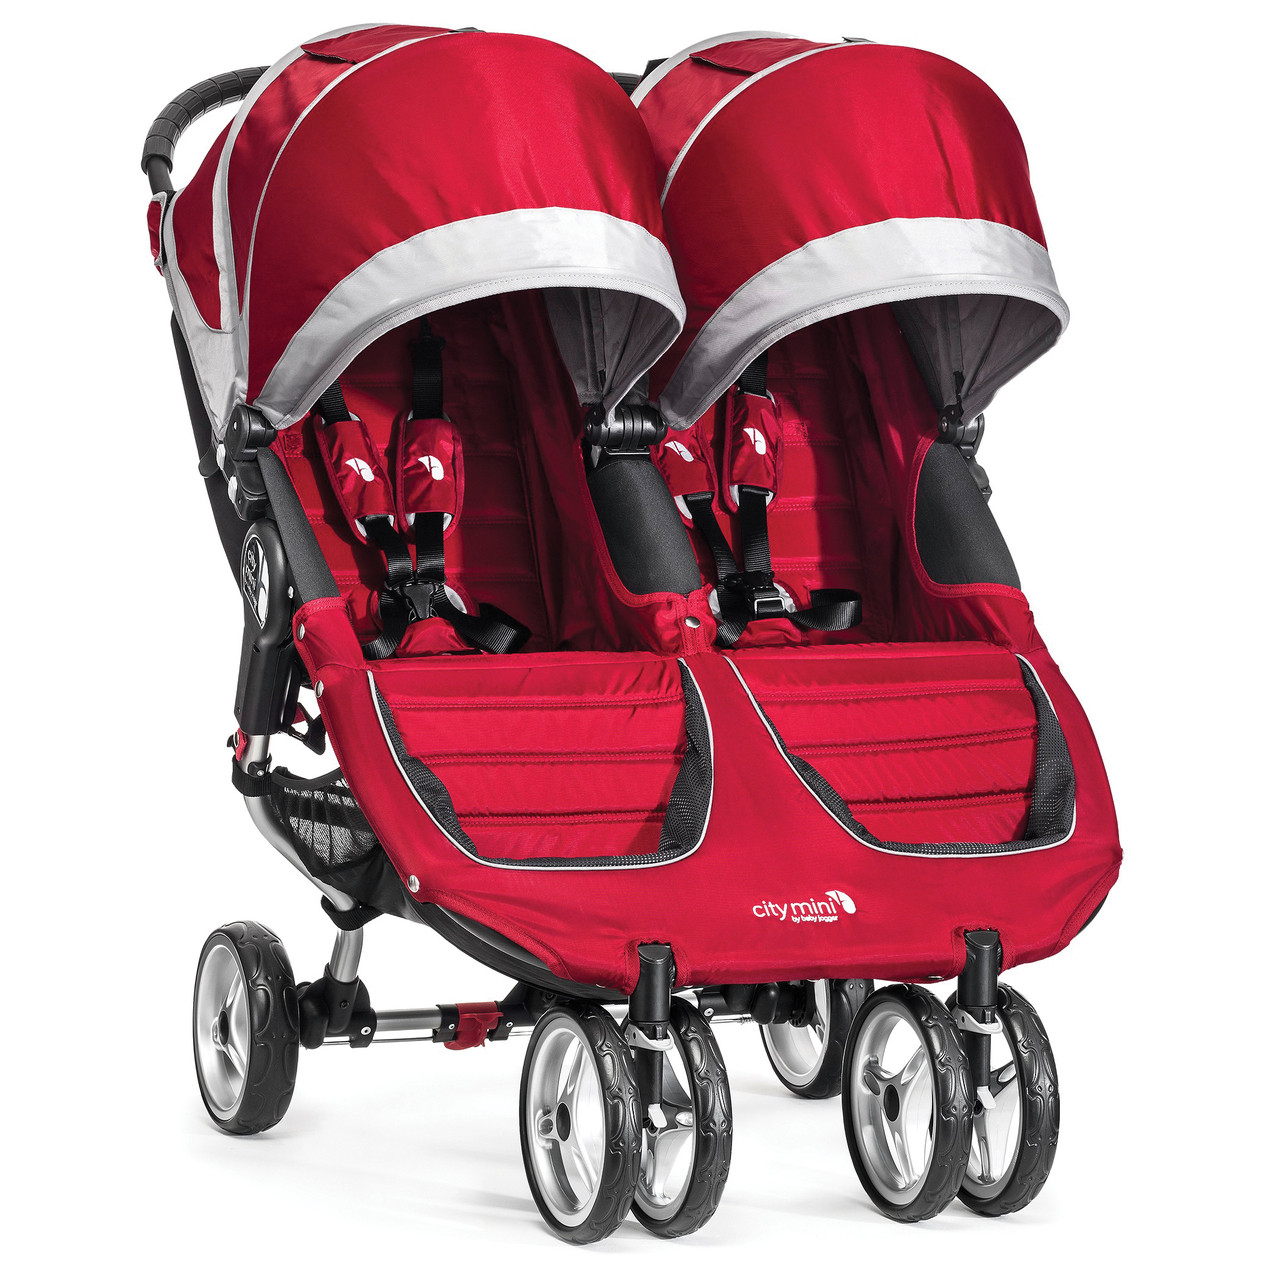 City Mini Double Stroller By Baby Jogger 2017 In Crimson